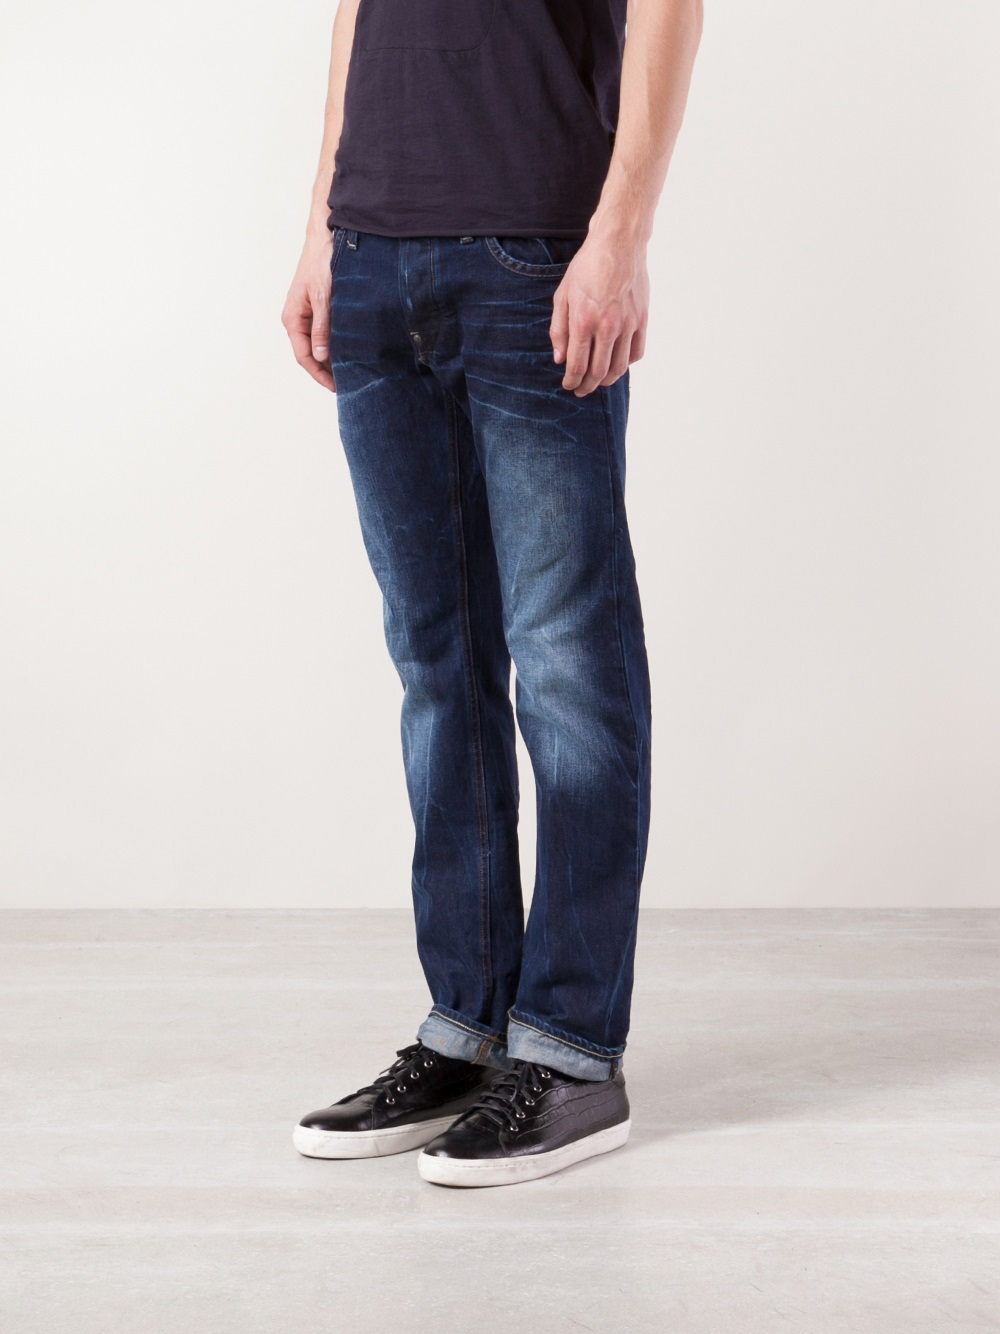 lyst g star raw wisk attacc low straight leg jeans in blue for men. Black Bedroom Furniture Sets. Home Design Ideas